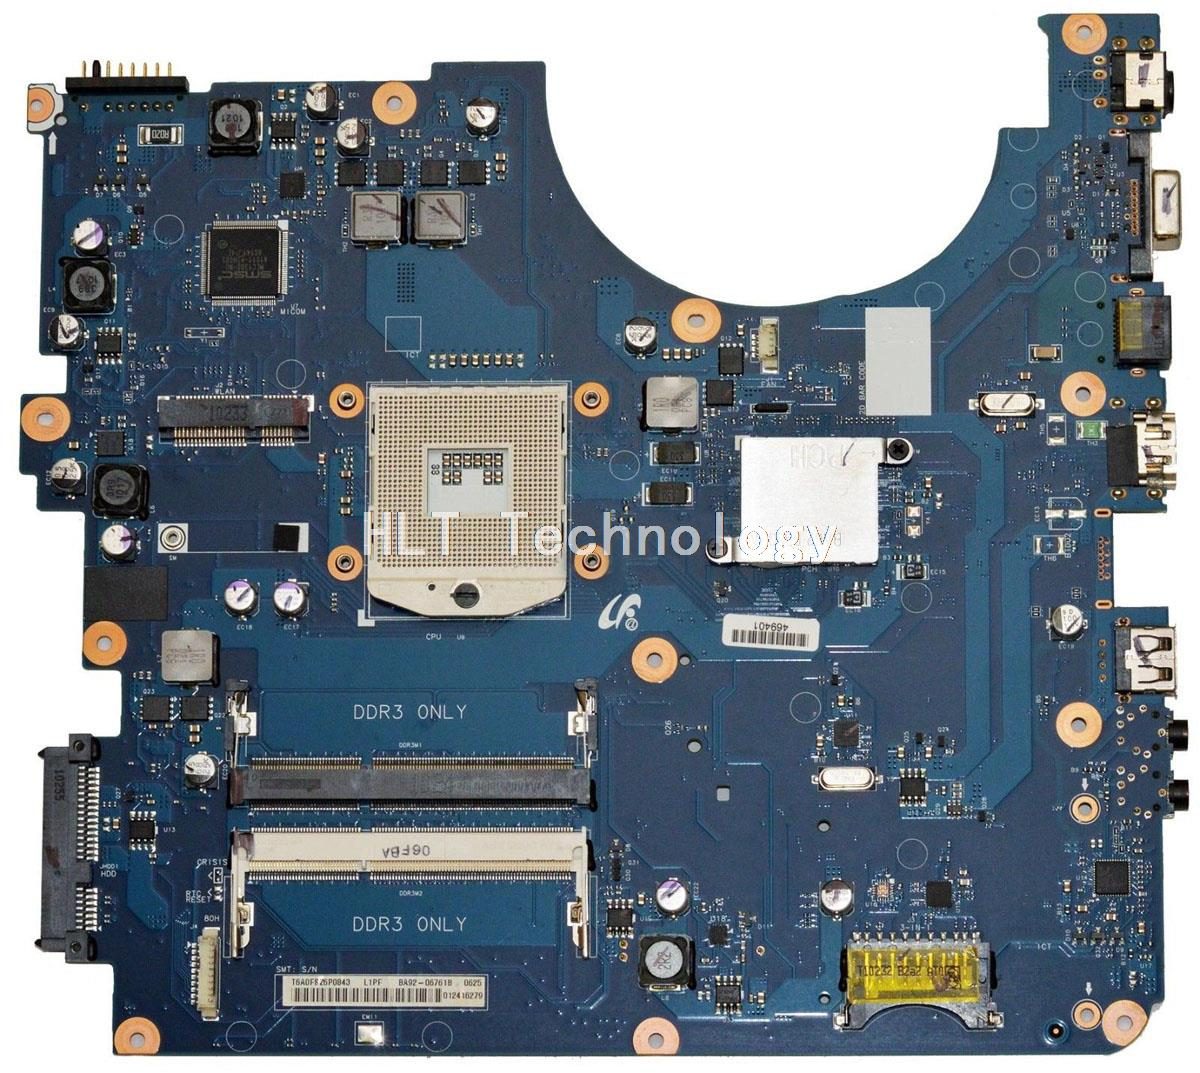 HOLYTIME Laptop Motherboard For Samsung R540 R580 BA92-06761A HM55 DDR3 integrated graphics card 100% fully testedHOLYTIME Laptop Motherboard For Samsung R540 R580 BA92-06761A HM55 DDR3 integrated graphics card 100% fully tested